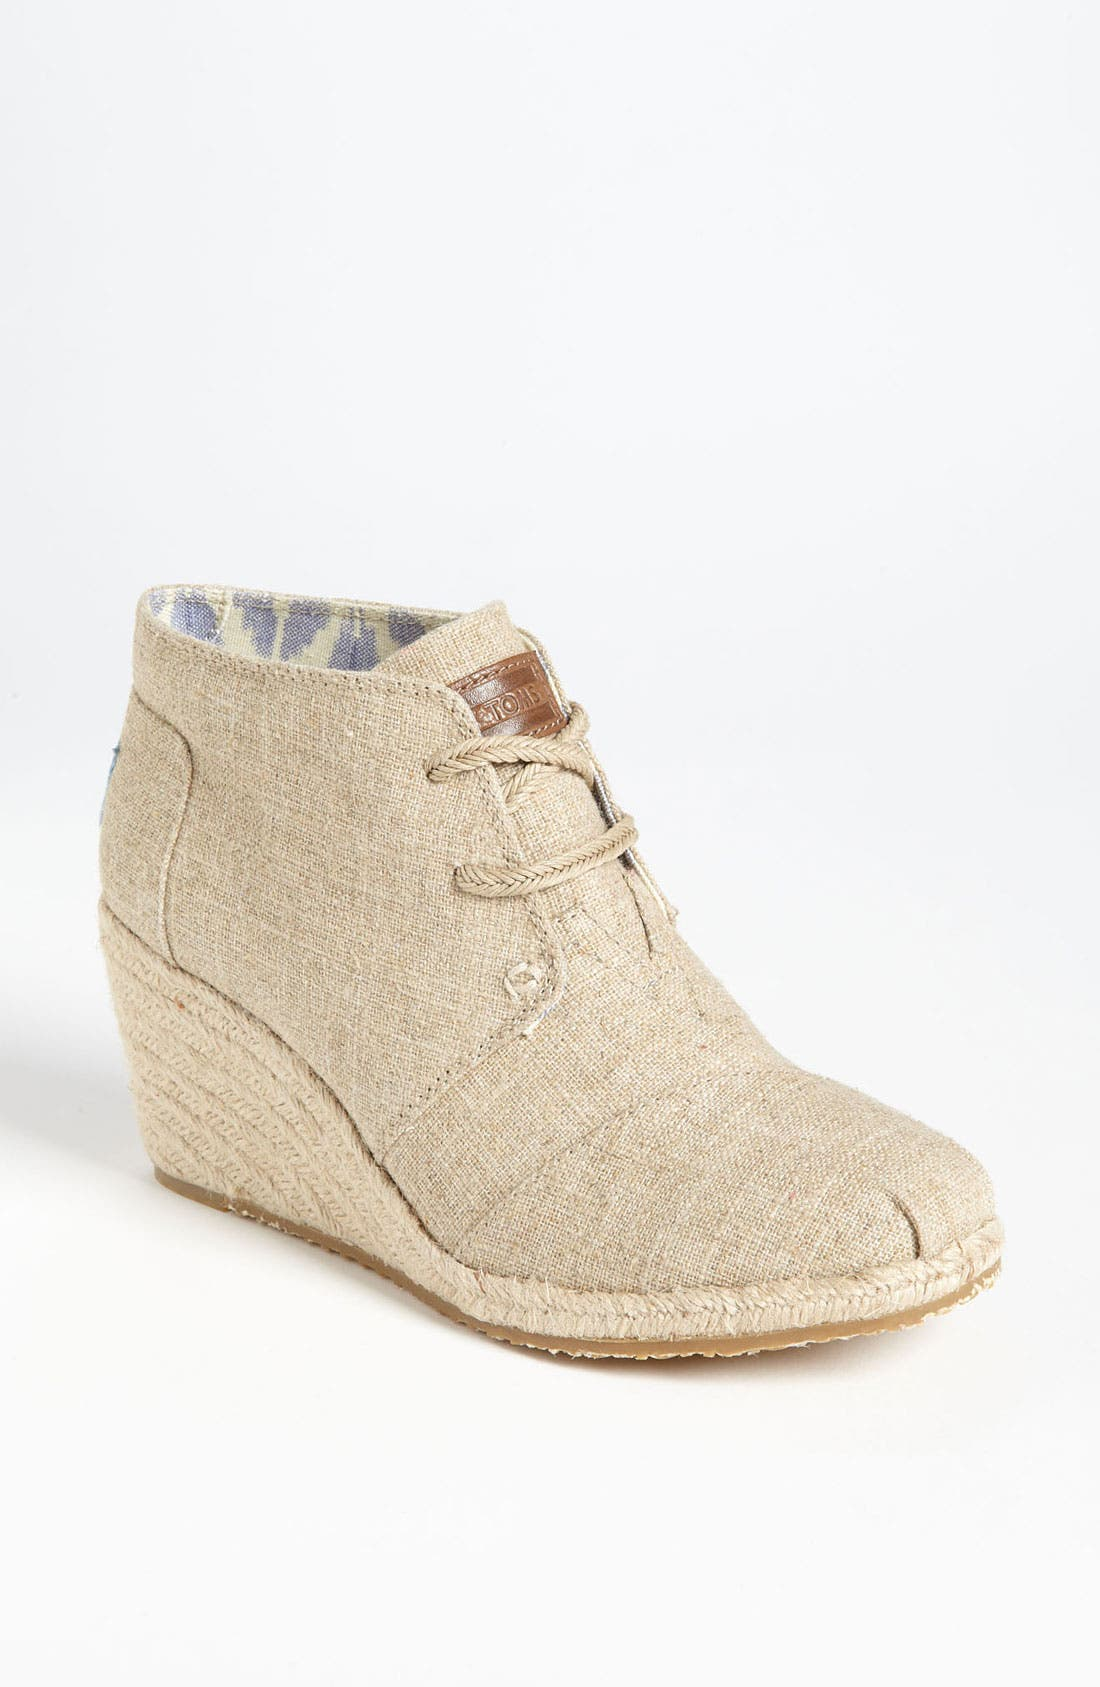 Alternate Image 1 Selected - TOMS 'Desert' Burlap Wedge Bootie